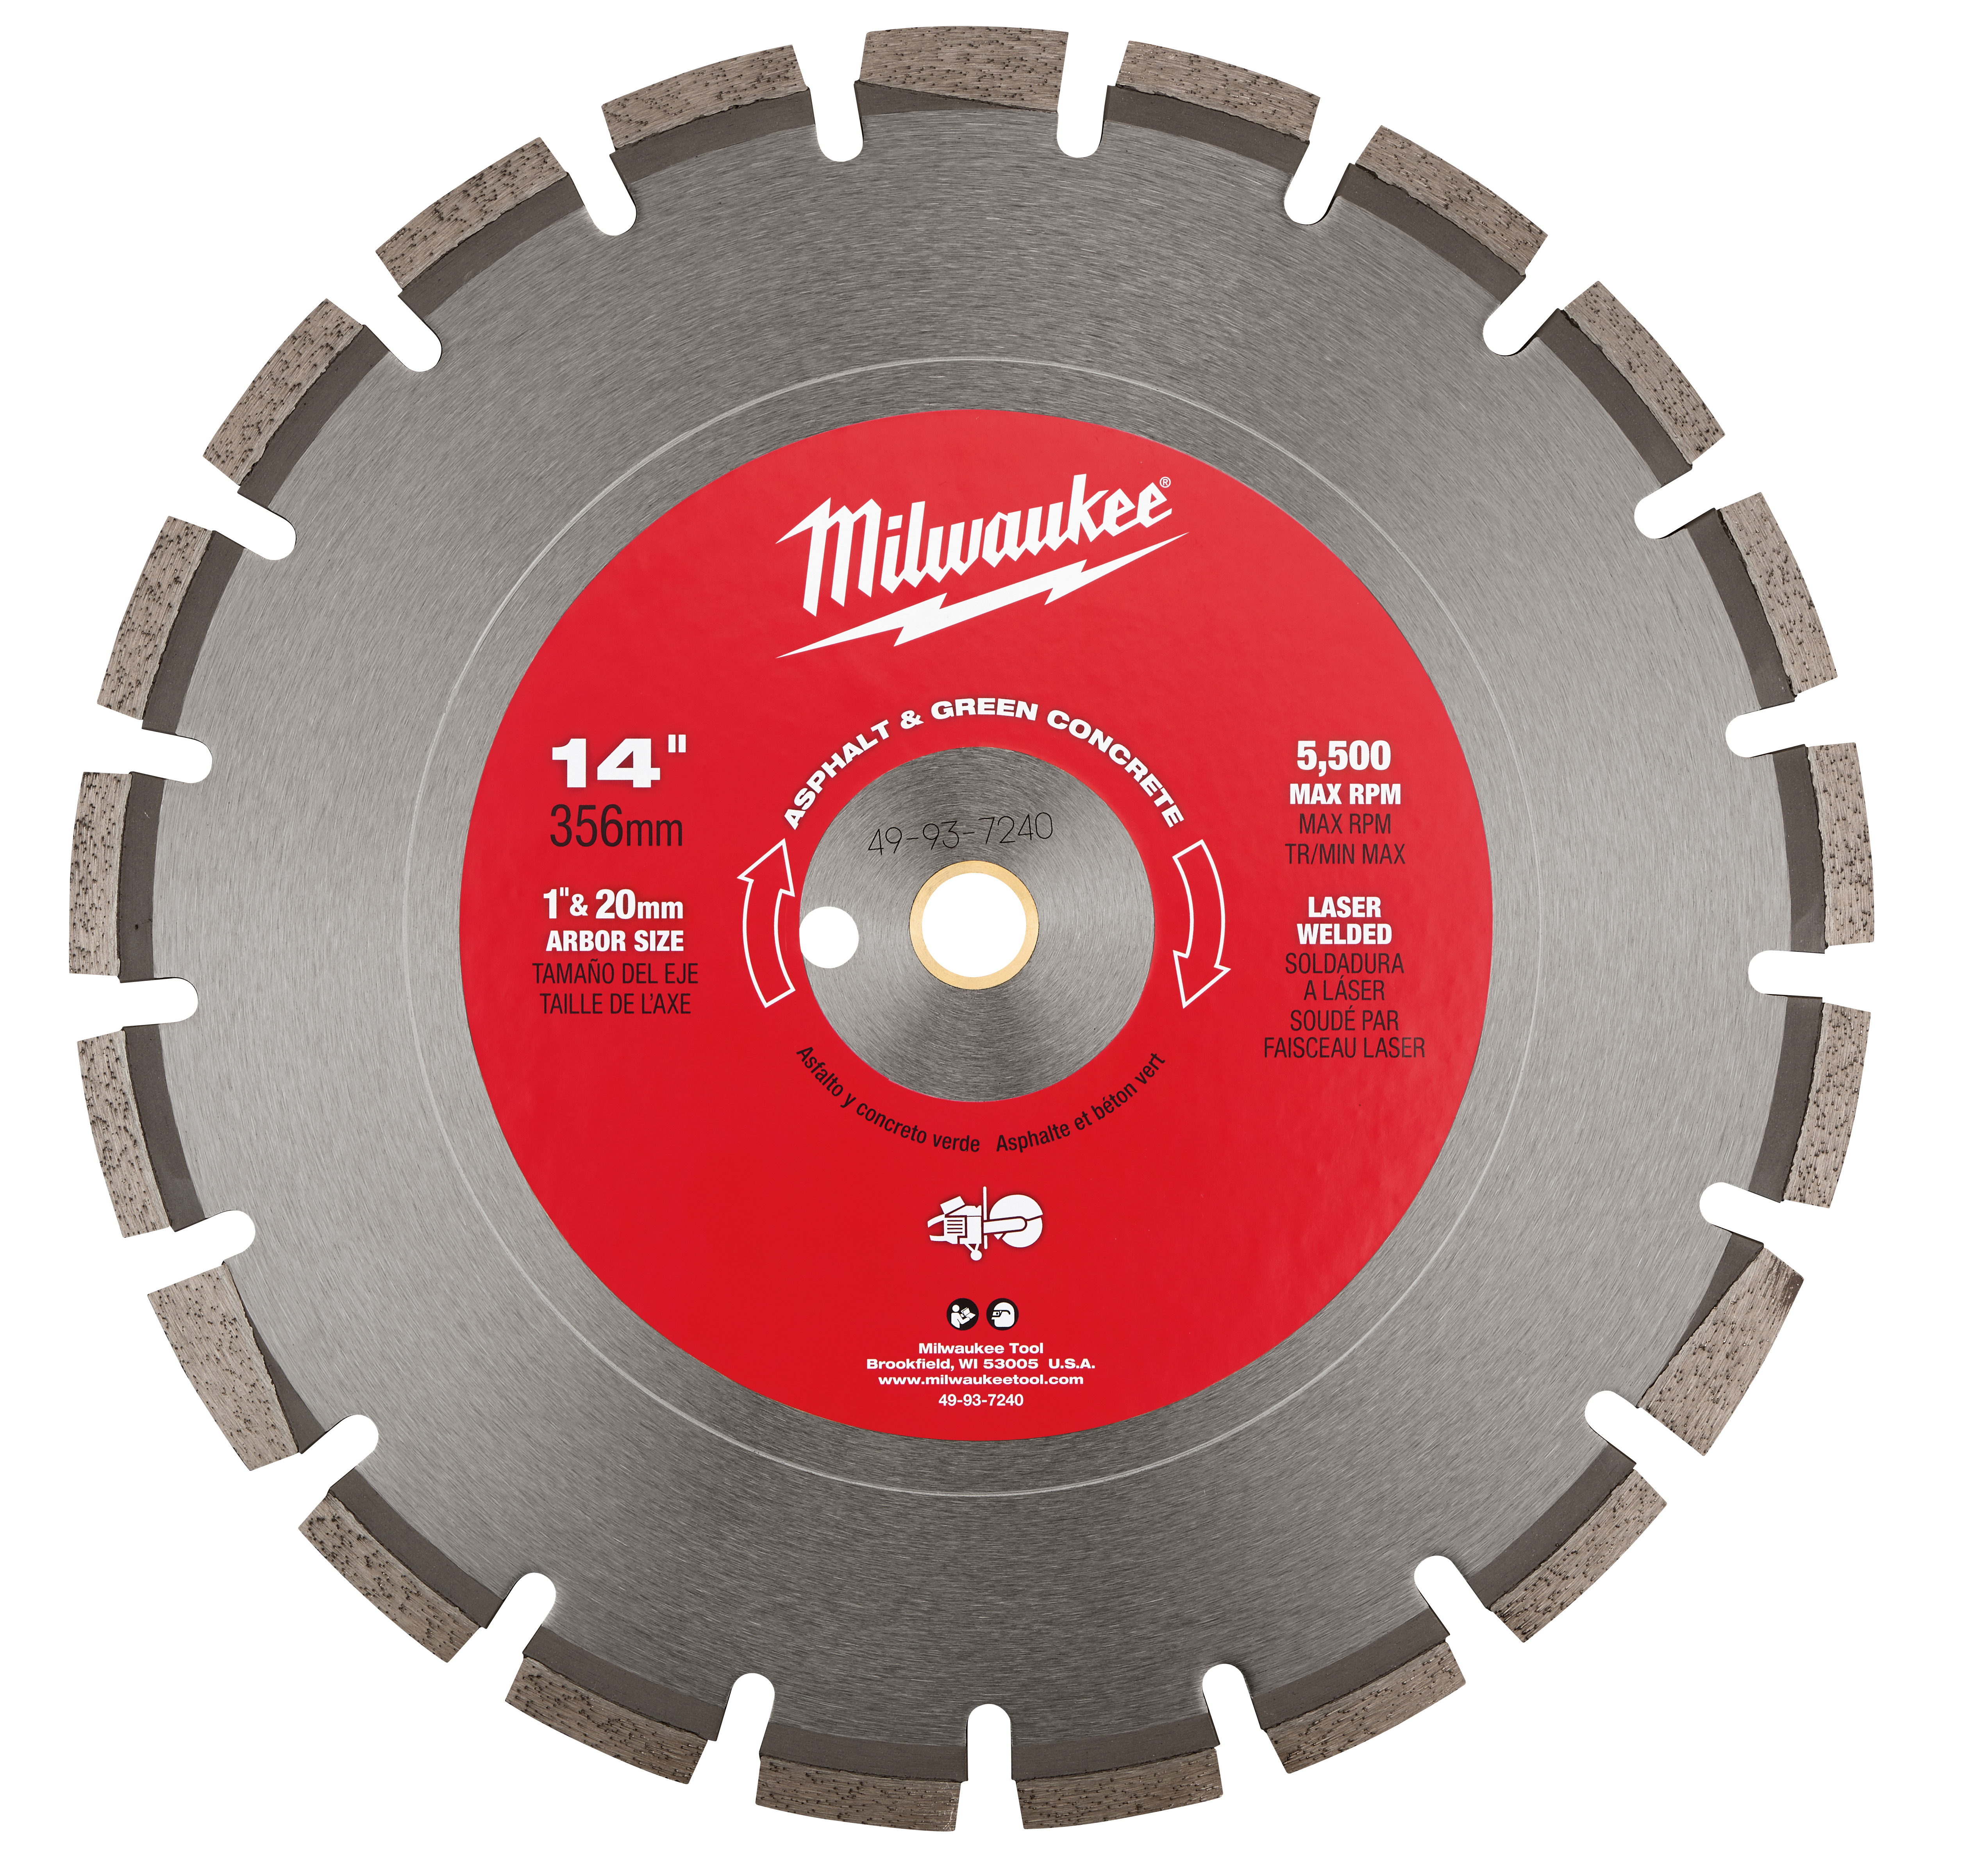 Milwaukee® 49-93-7240 Circular Segmented Diamond Blade, 14 in Dia Blade, 1/8 in W, 1 in Arbor/Shank, Dry/Wet Cutting